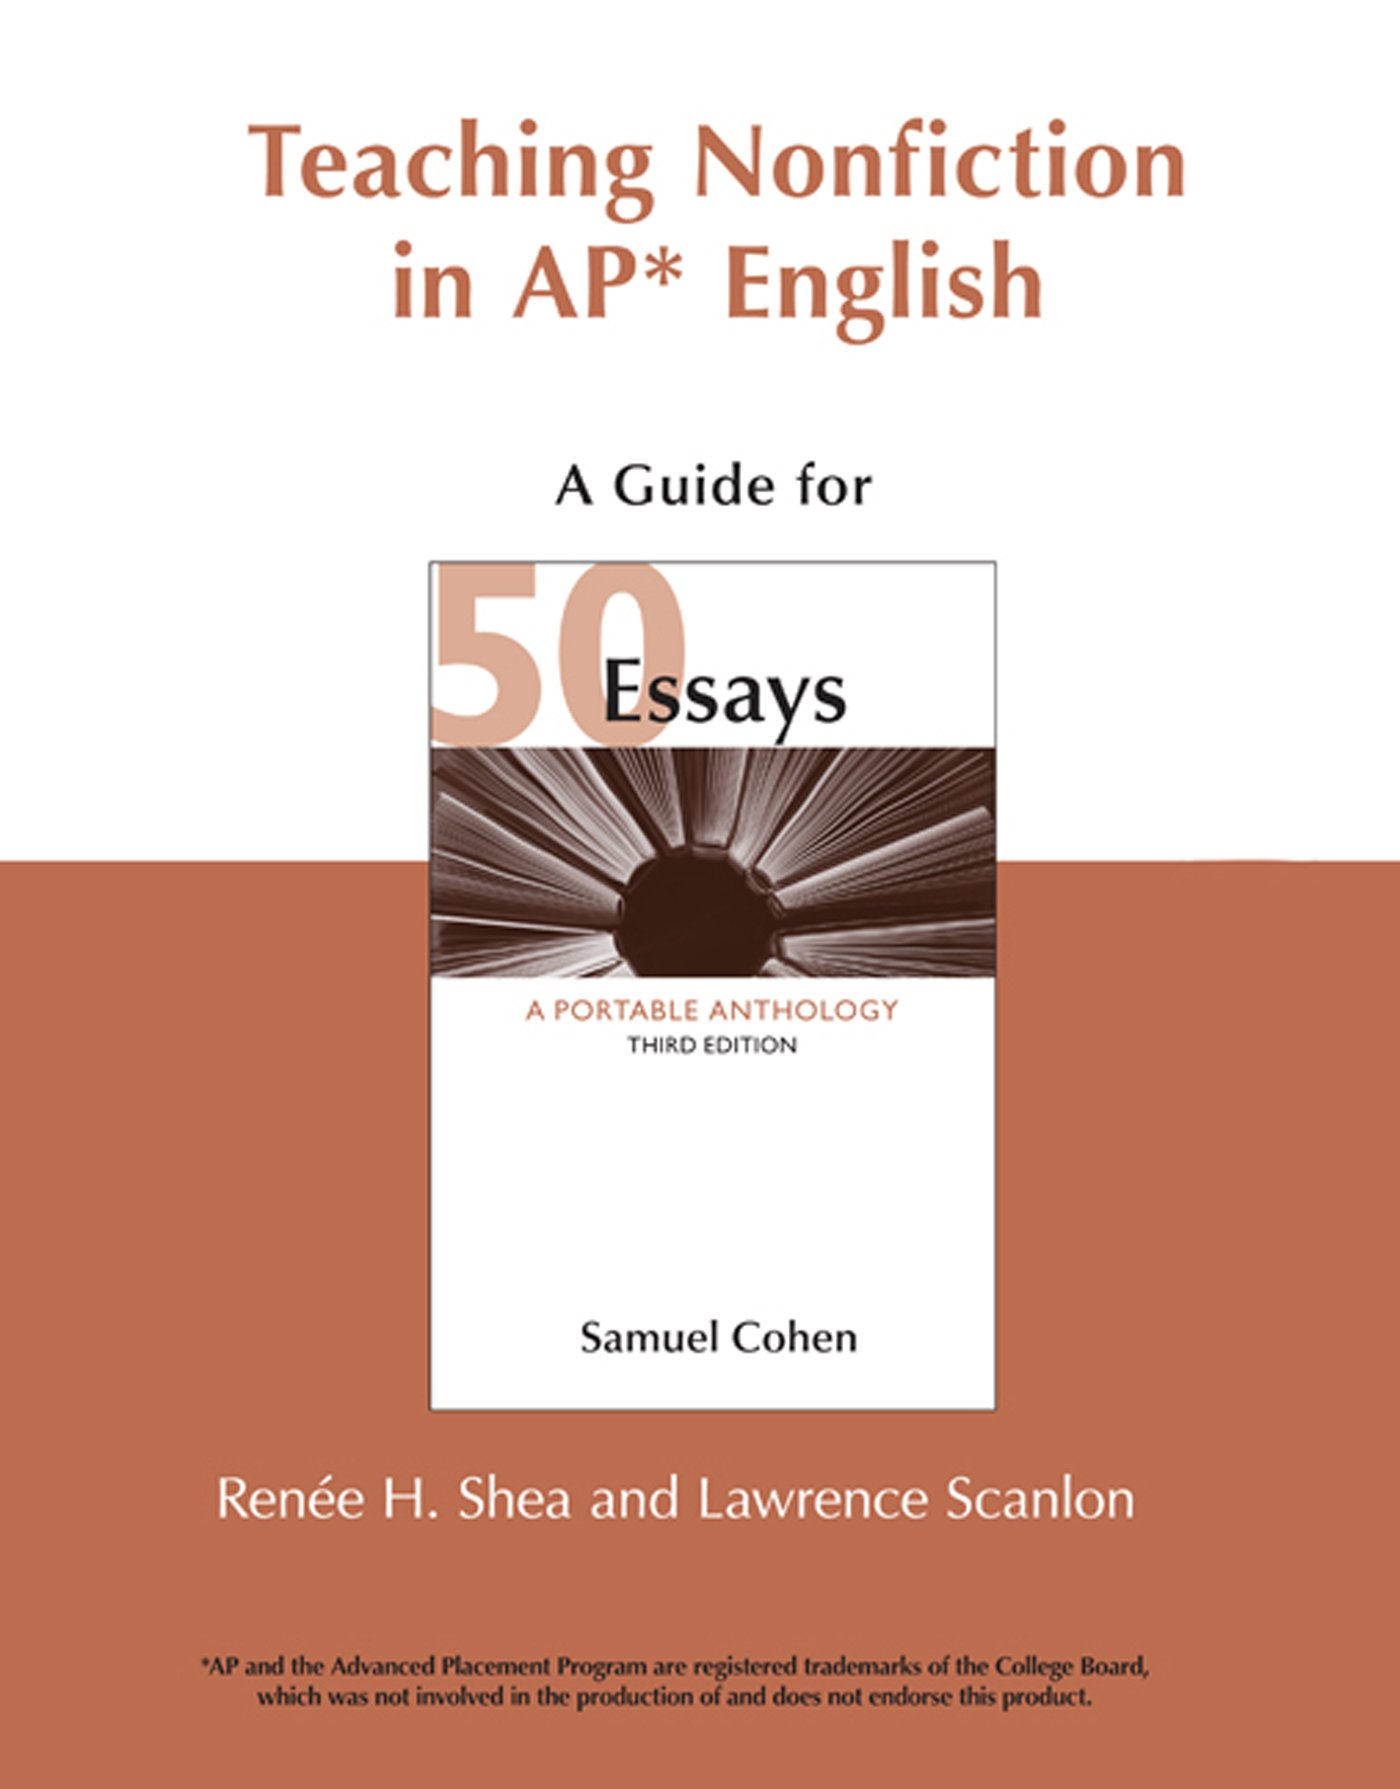 teaching nonfiction in ap english a guide for  essays third  teaching nonfiction in ap english a guide for  essays third edition  paperback